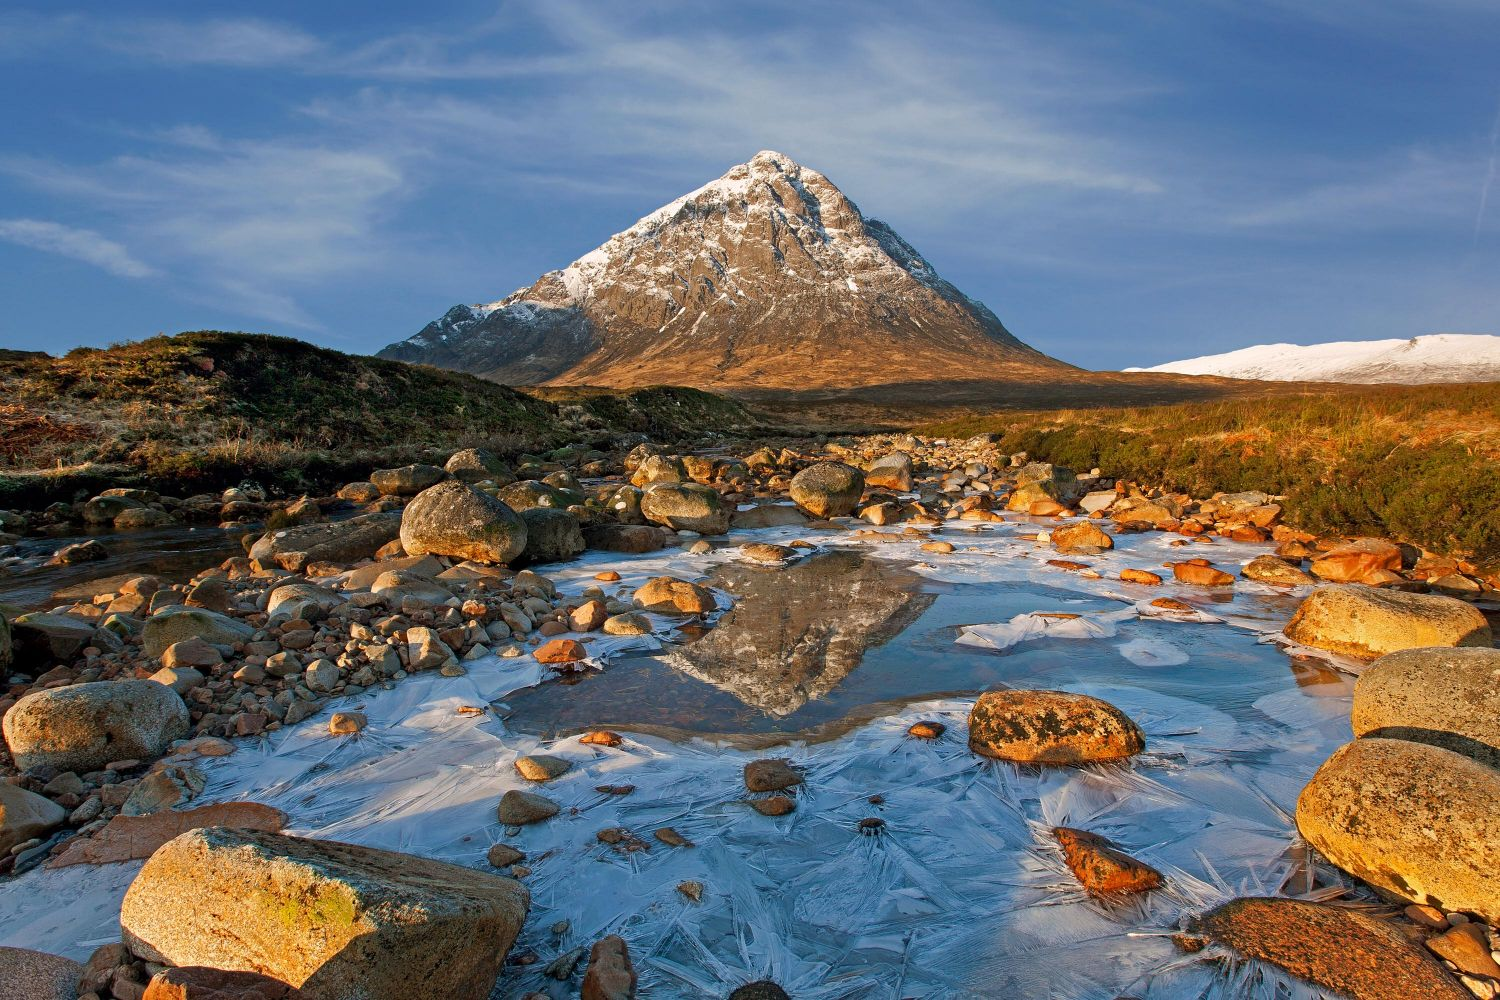 Buachaille Etive Mor reflections in the River Coupall